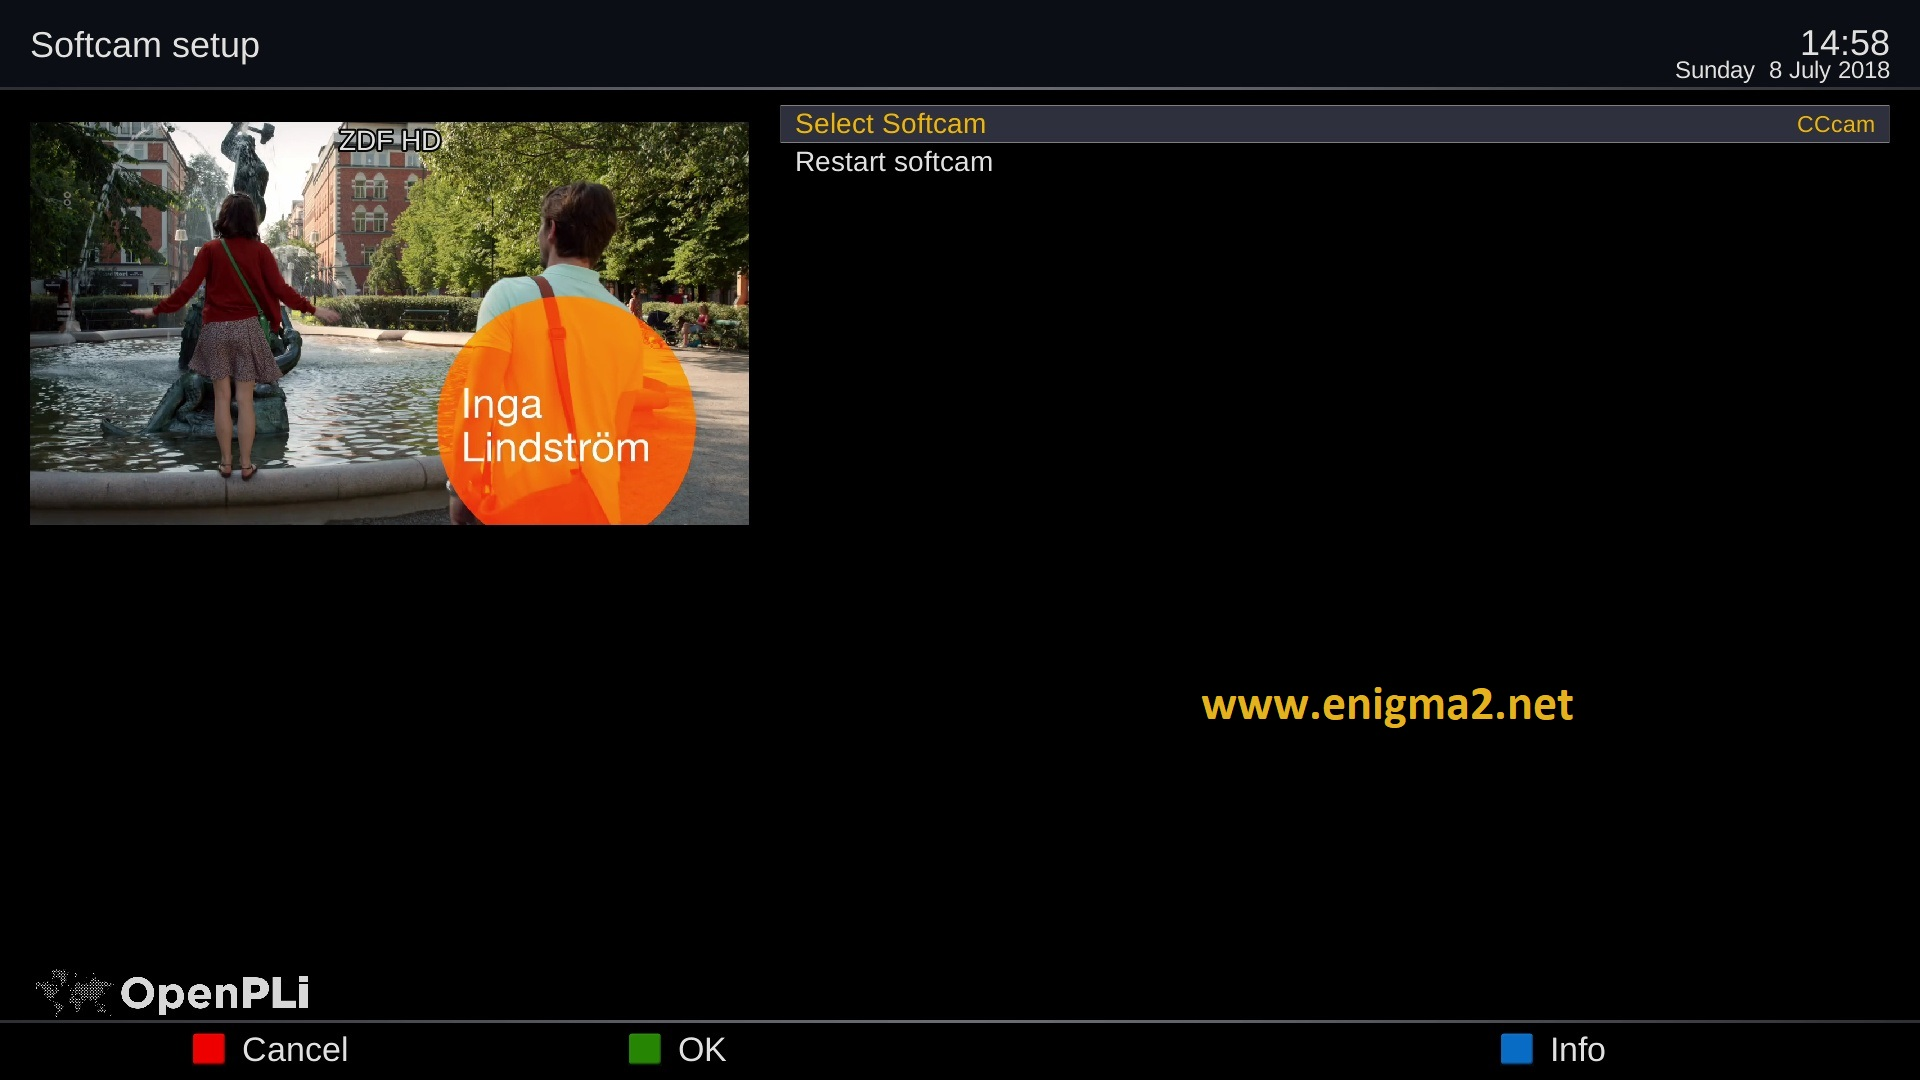 TUTORIAL] How to install CCCAM on OpenPLi – ENIGMA2